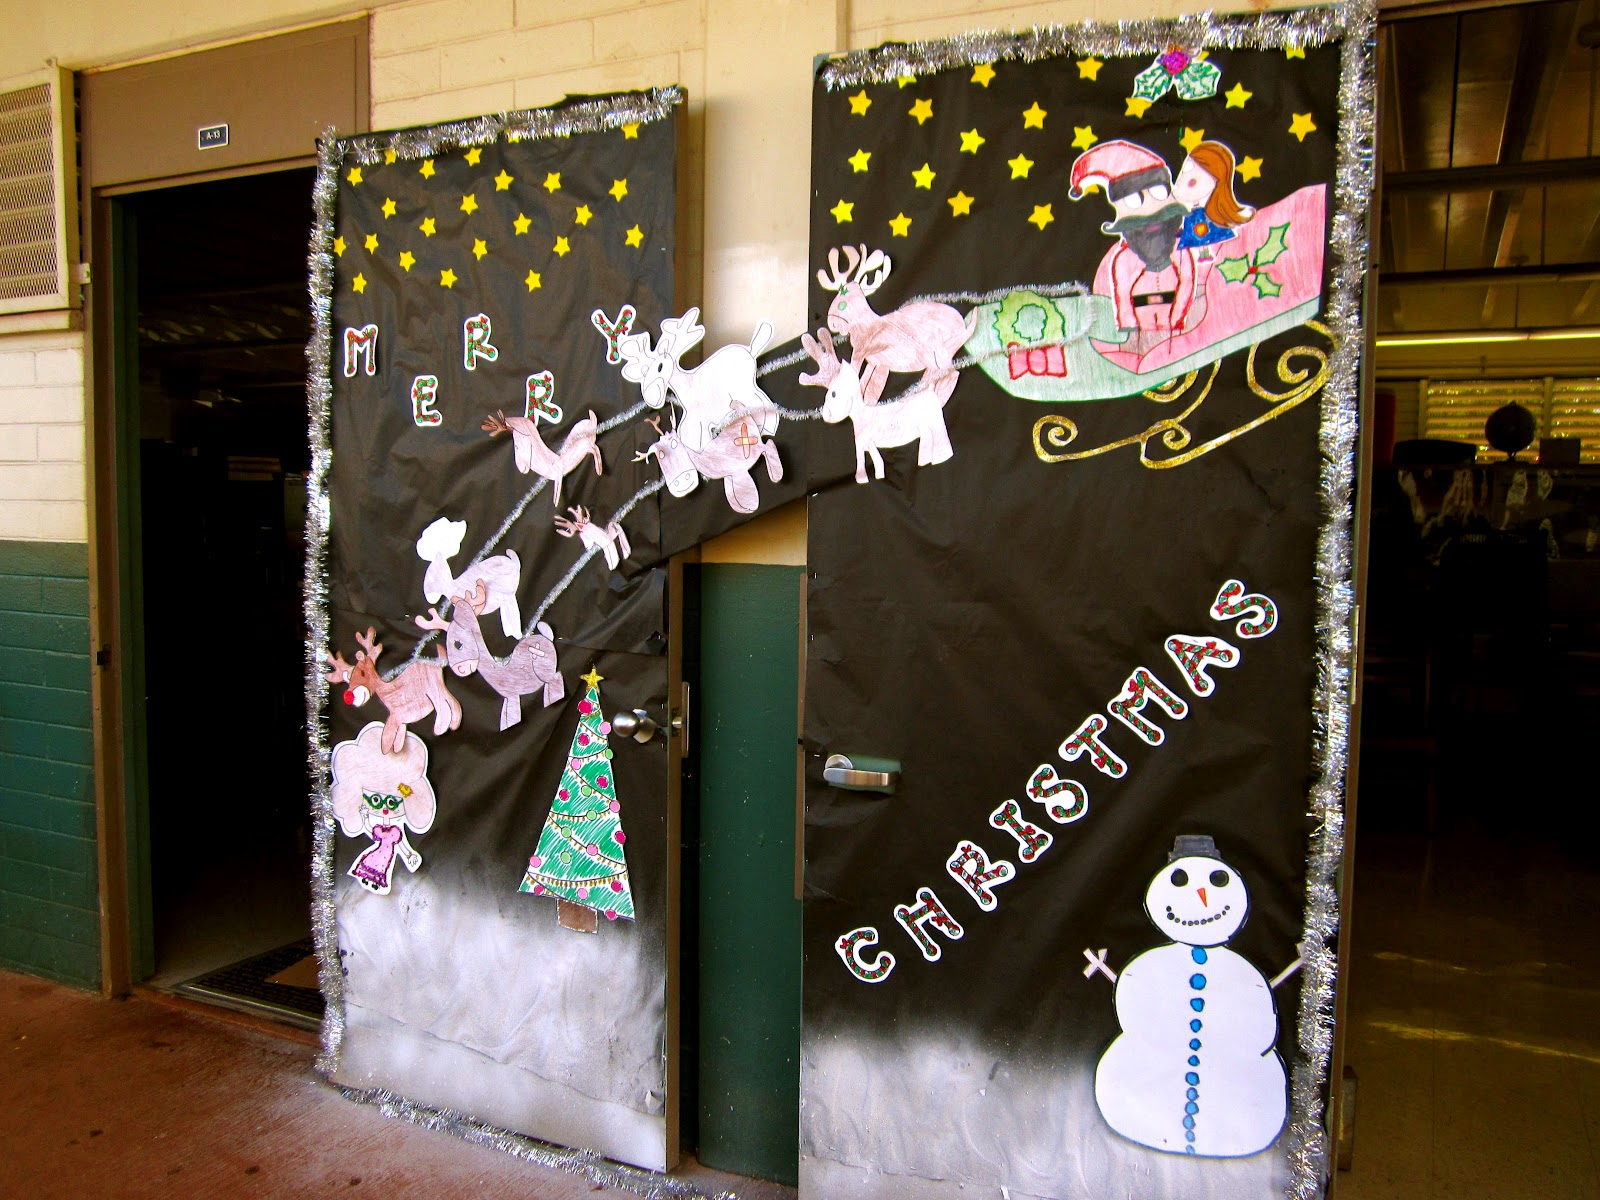 homeroom p2 completed an unprecedented sweep this year not only taking the halloween but also the xmas door decorating contest as well well done p2